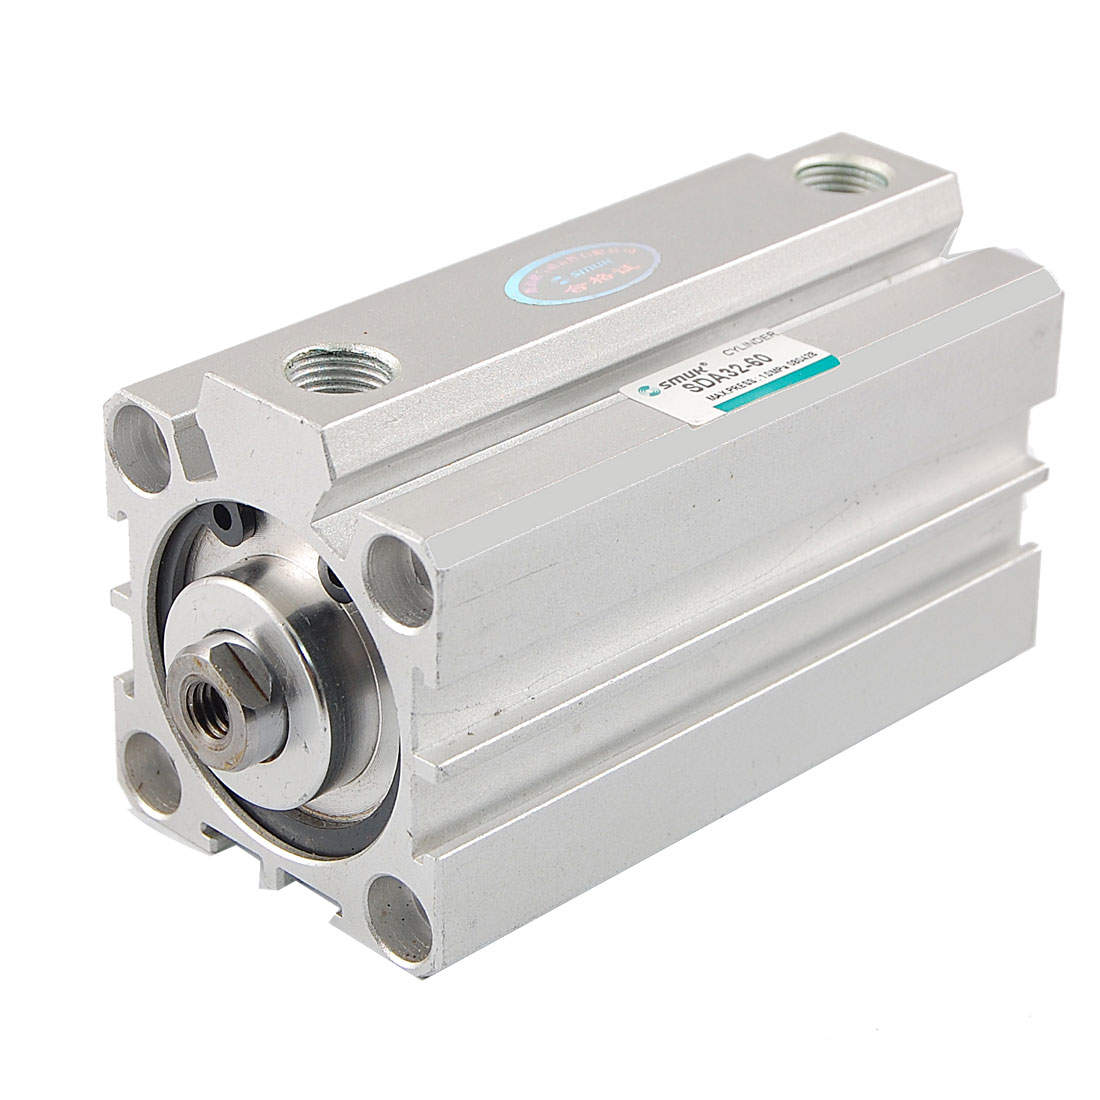 SDA 32-60 32mm Bore 60mm Stroke Double Action Pneumatic Actuator Air Cylinder